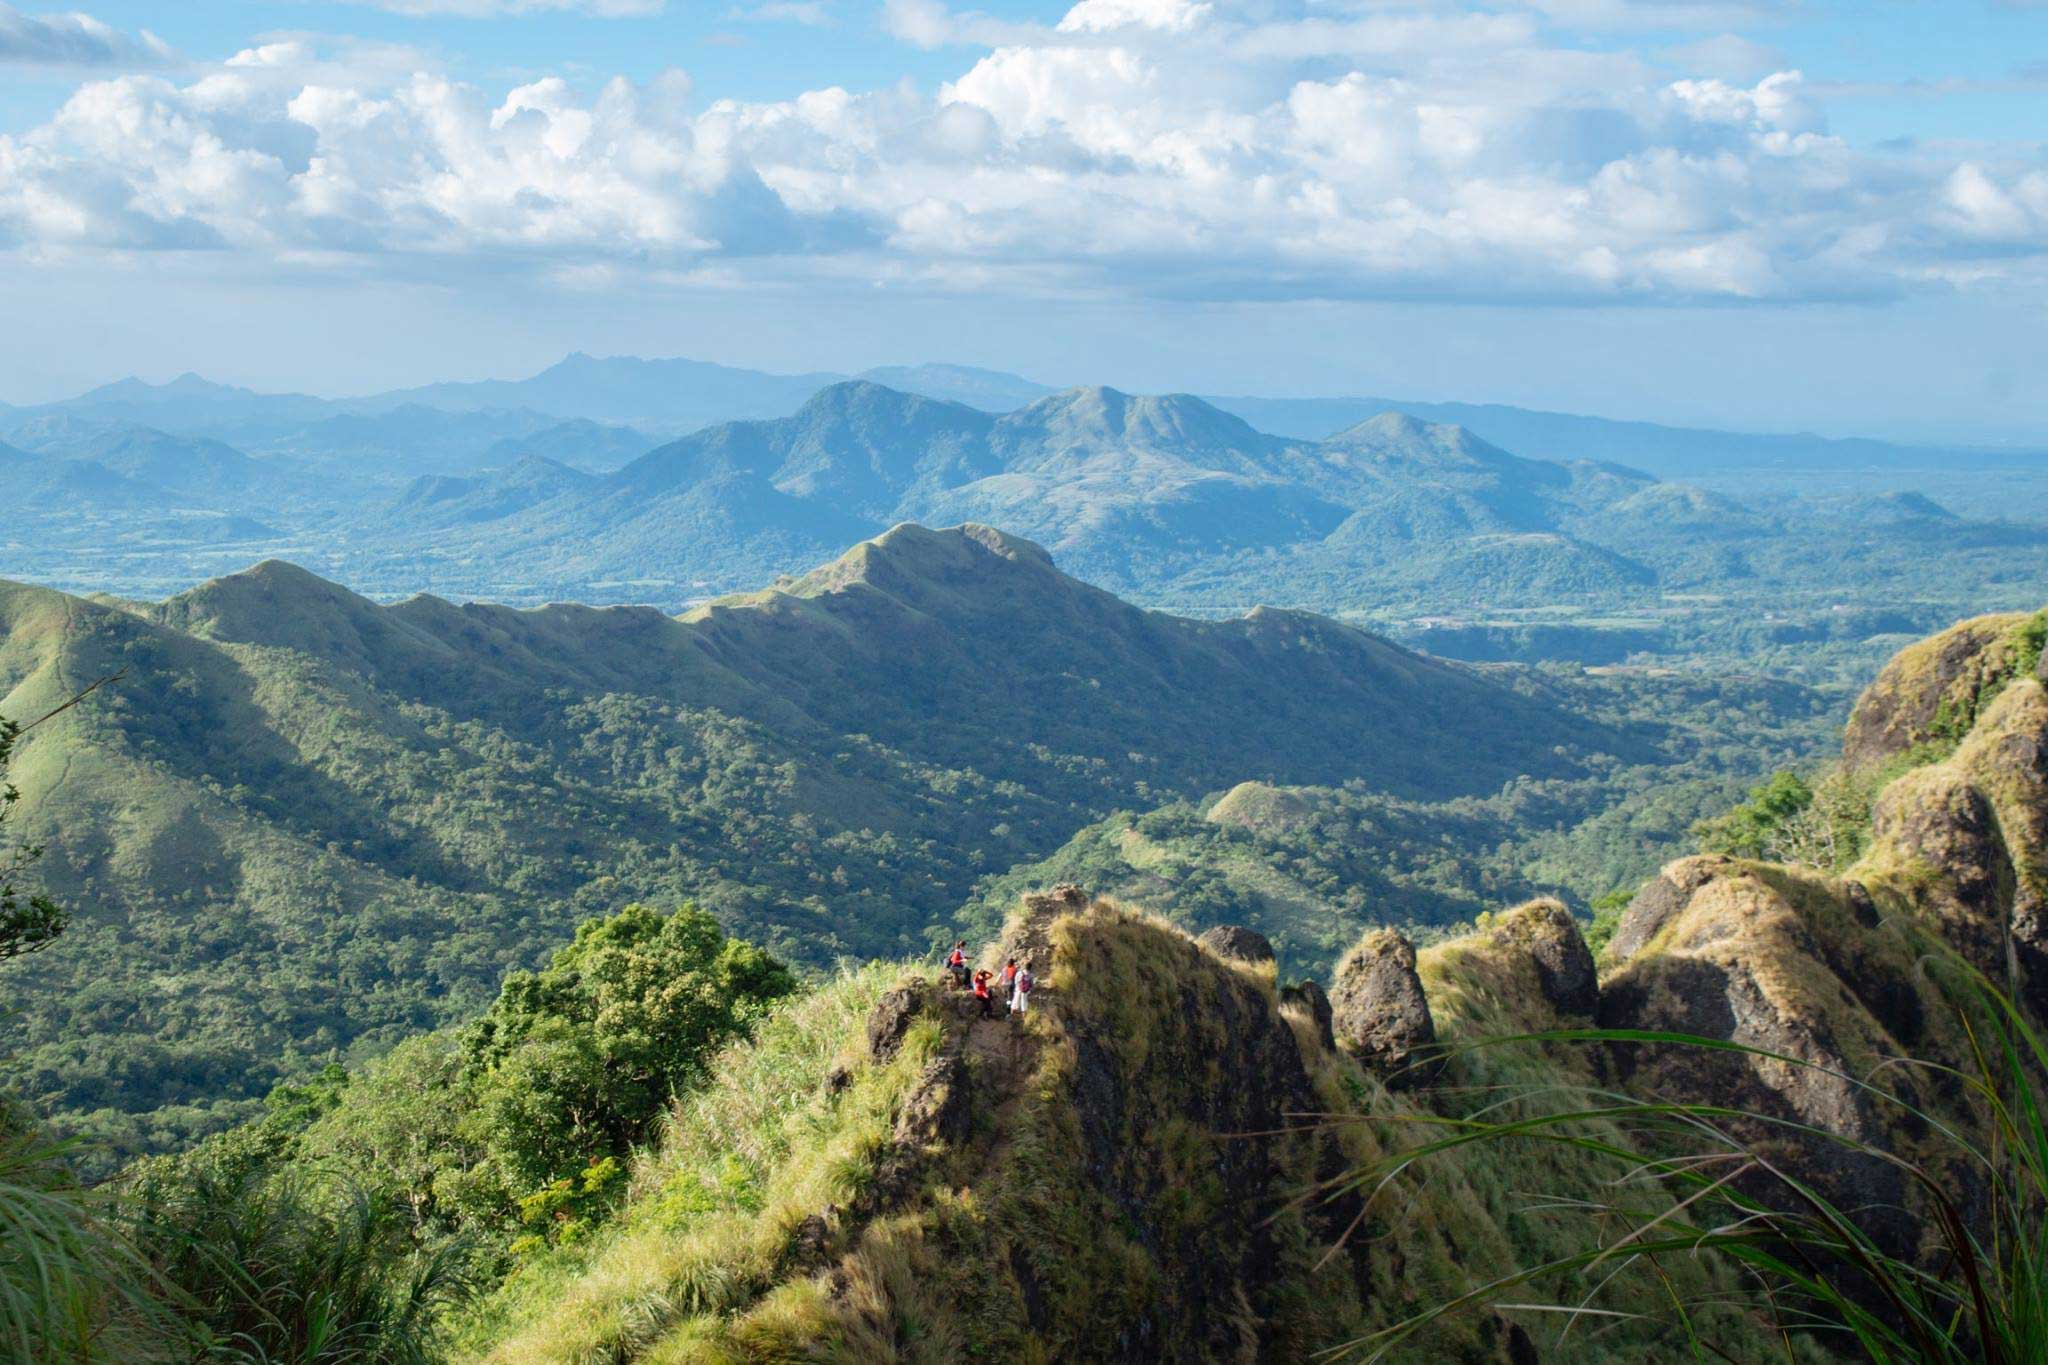 Let's Go Hiking And Trekking At Mount Pulag